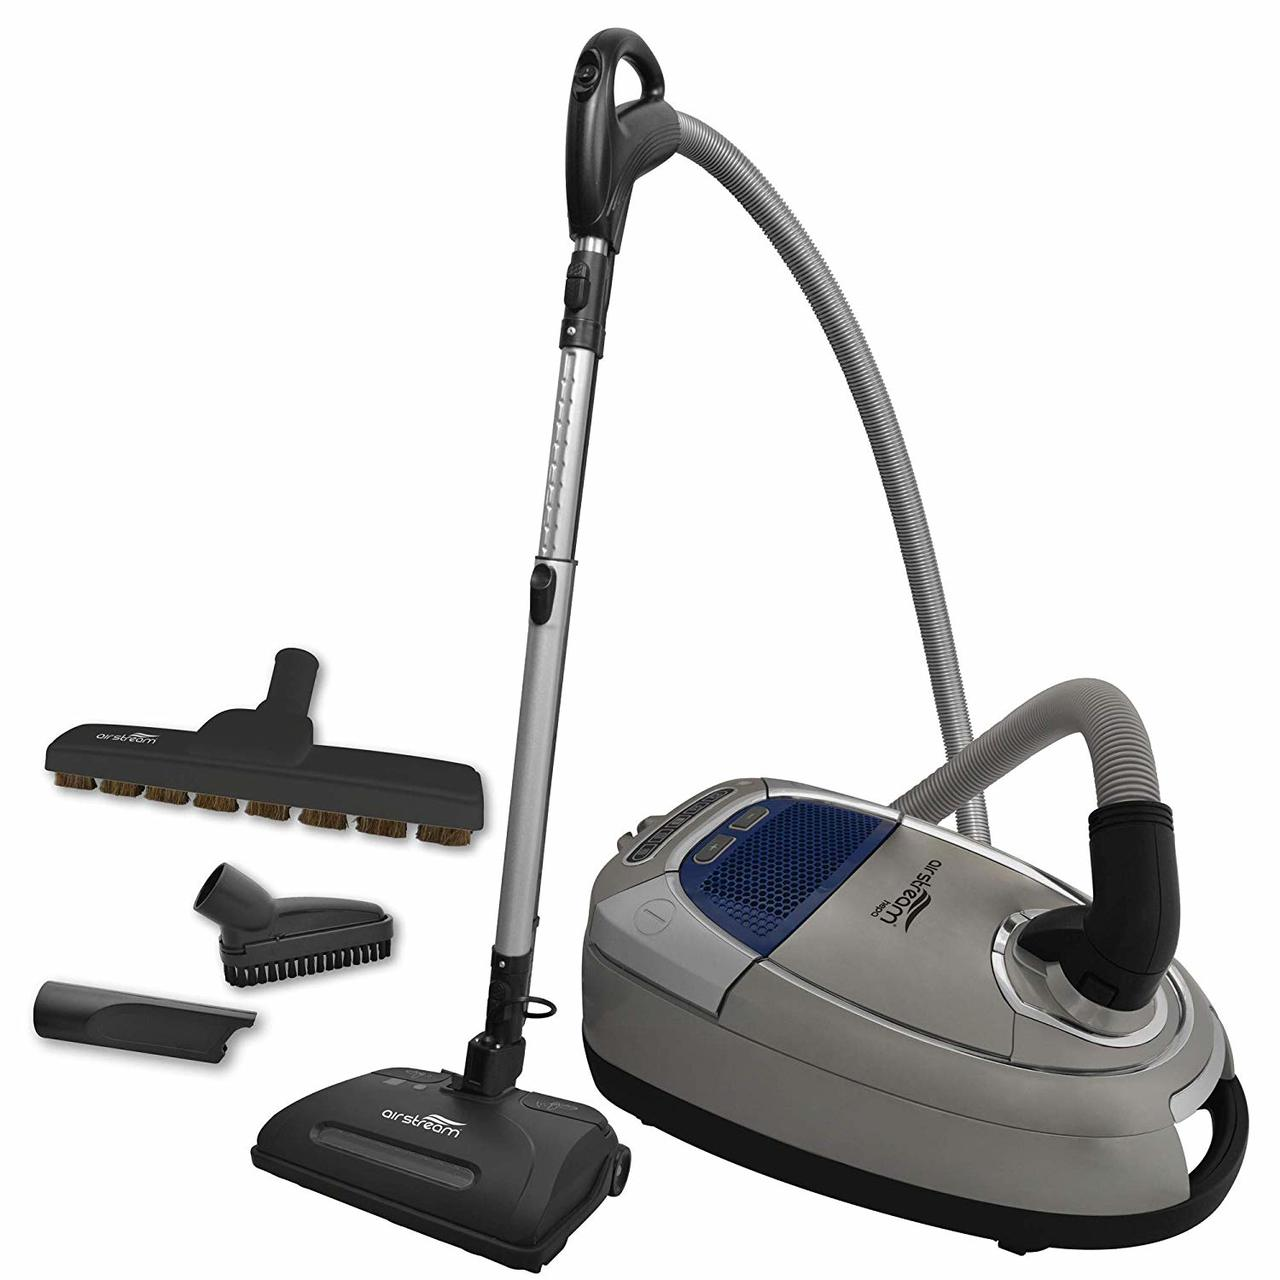 Airstream AS300 Corded Lightweight Canister Vacuum with Electric Accessories - Super Vacs